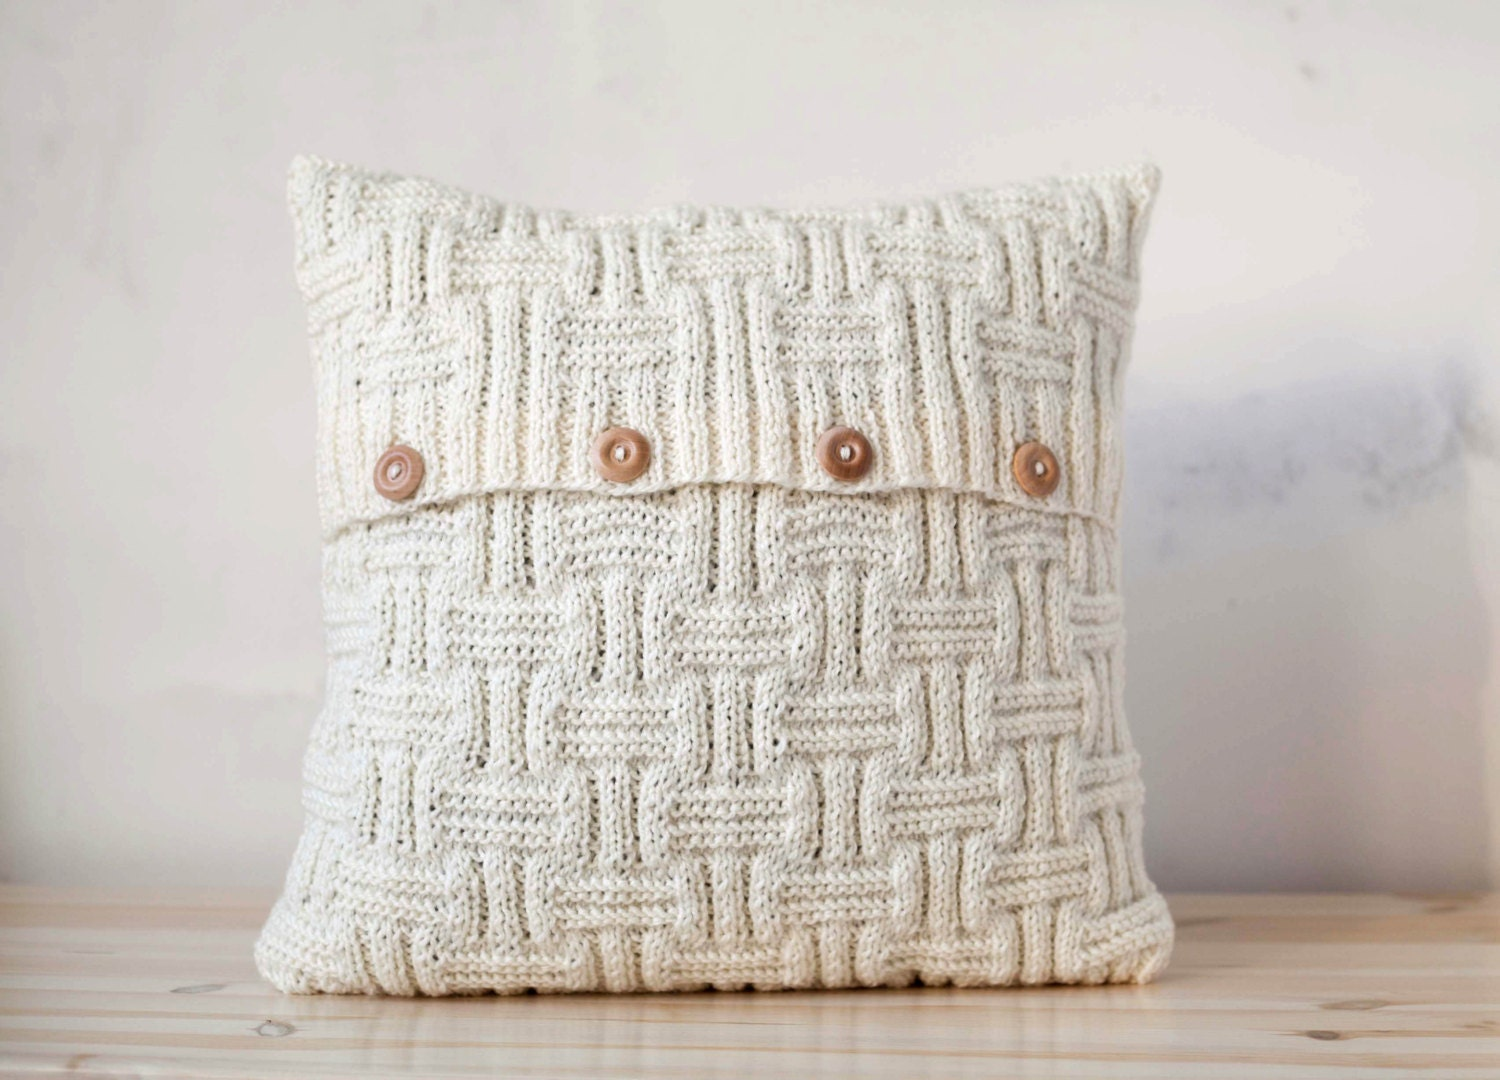 Knitted Infinity Scarves Patterns : Chunky hand knitted cushion lines pattern pillow cover with